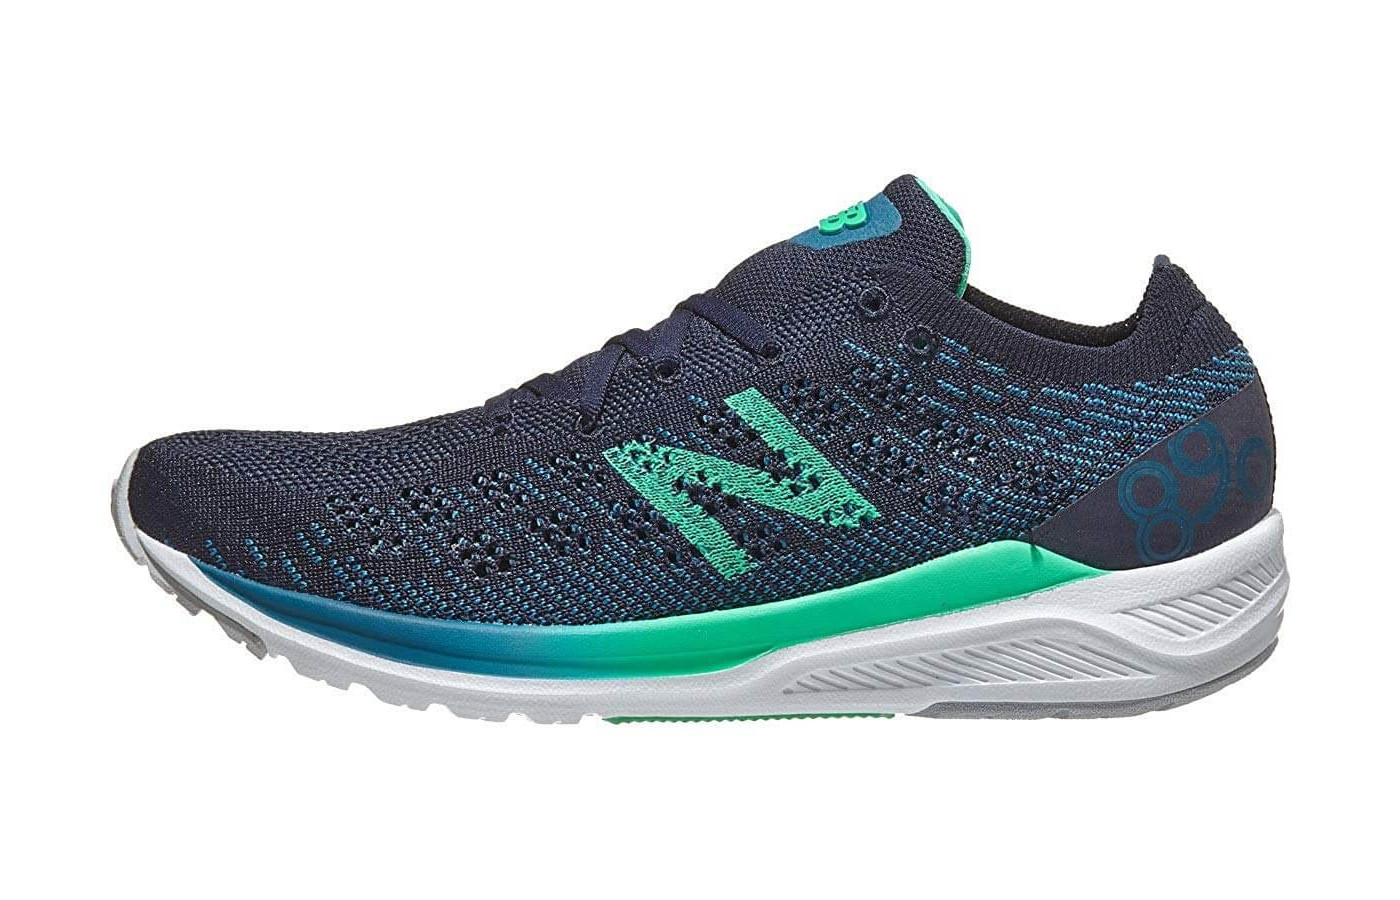 A REVlite midsole gives the 890v7 a very responsive wear.